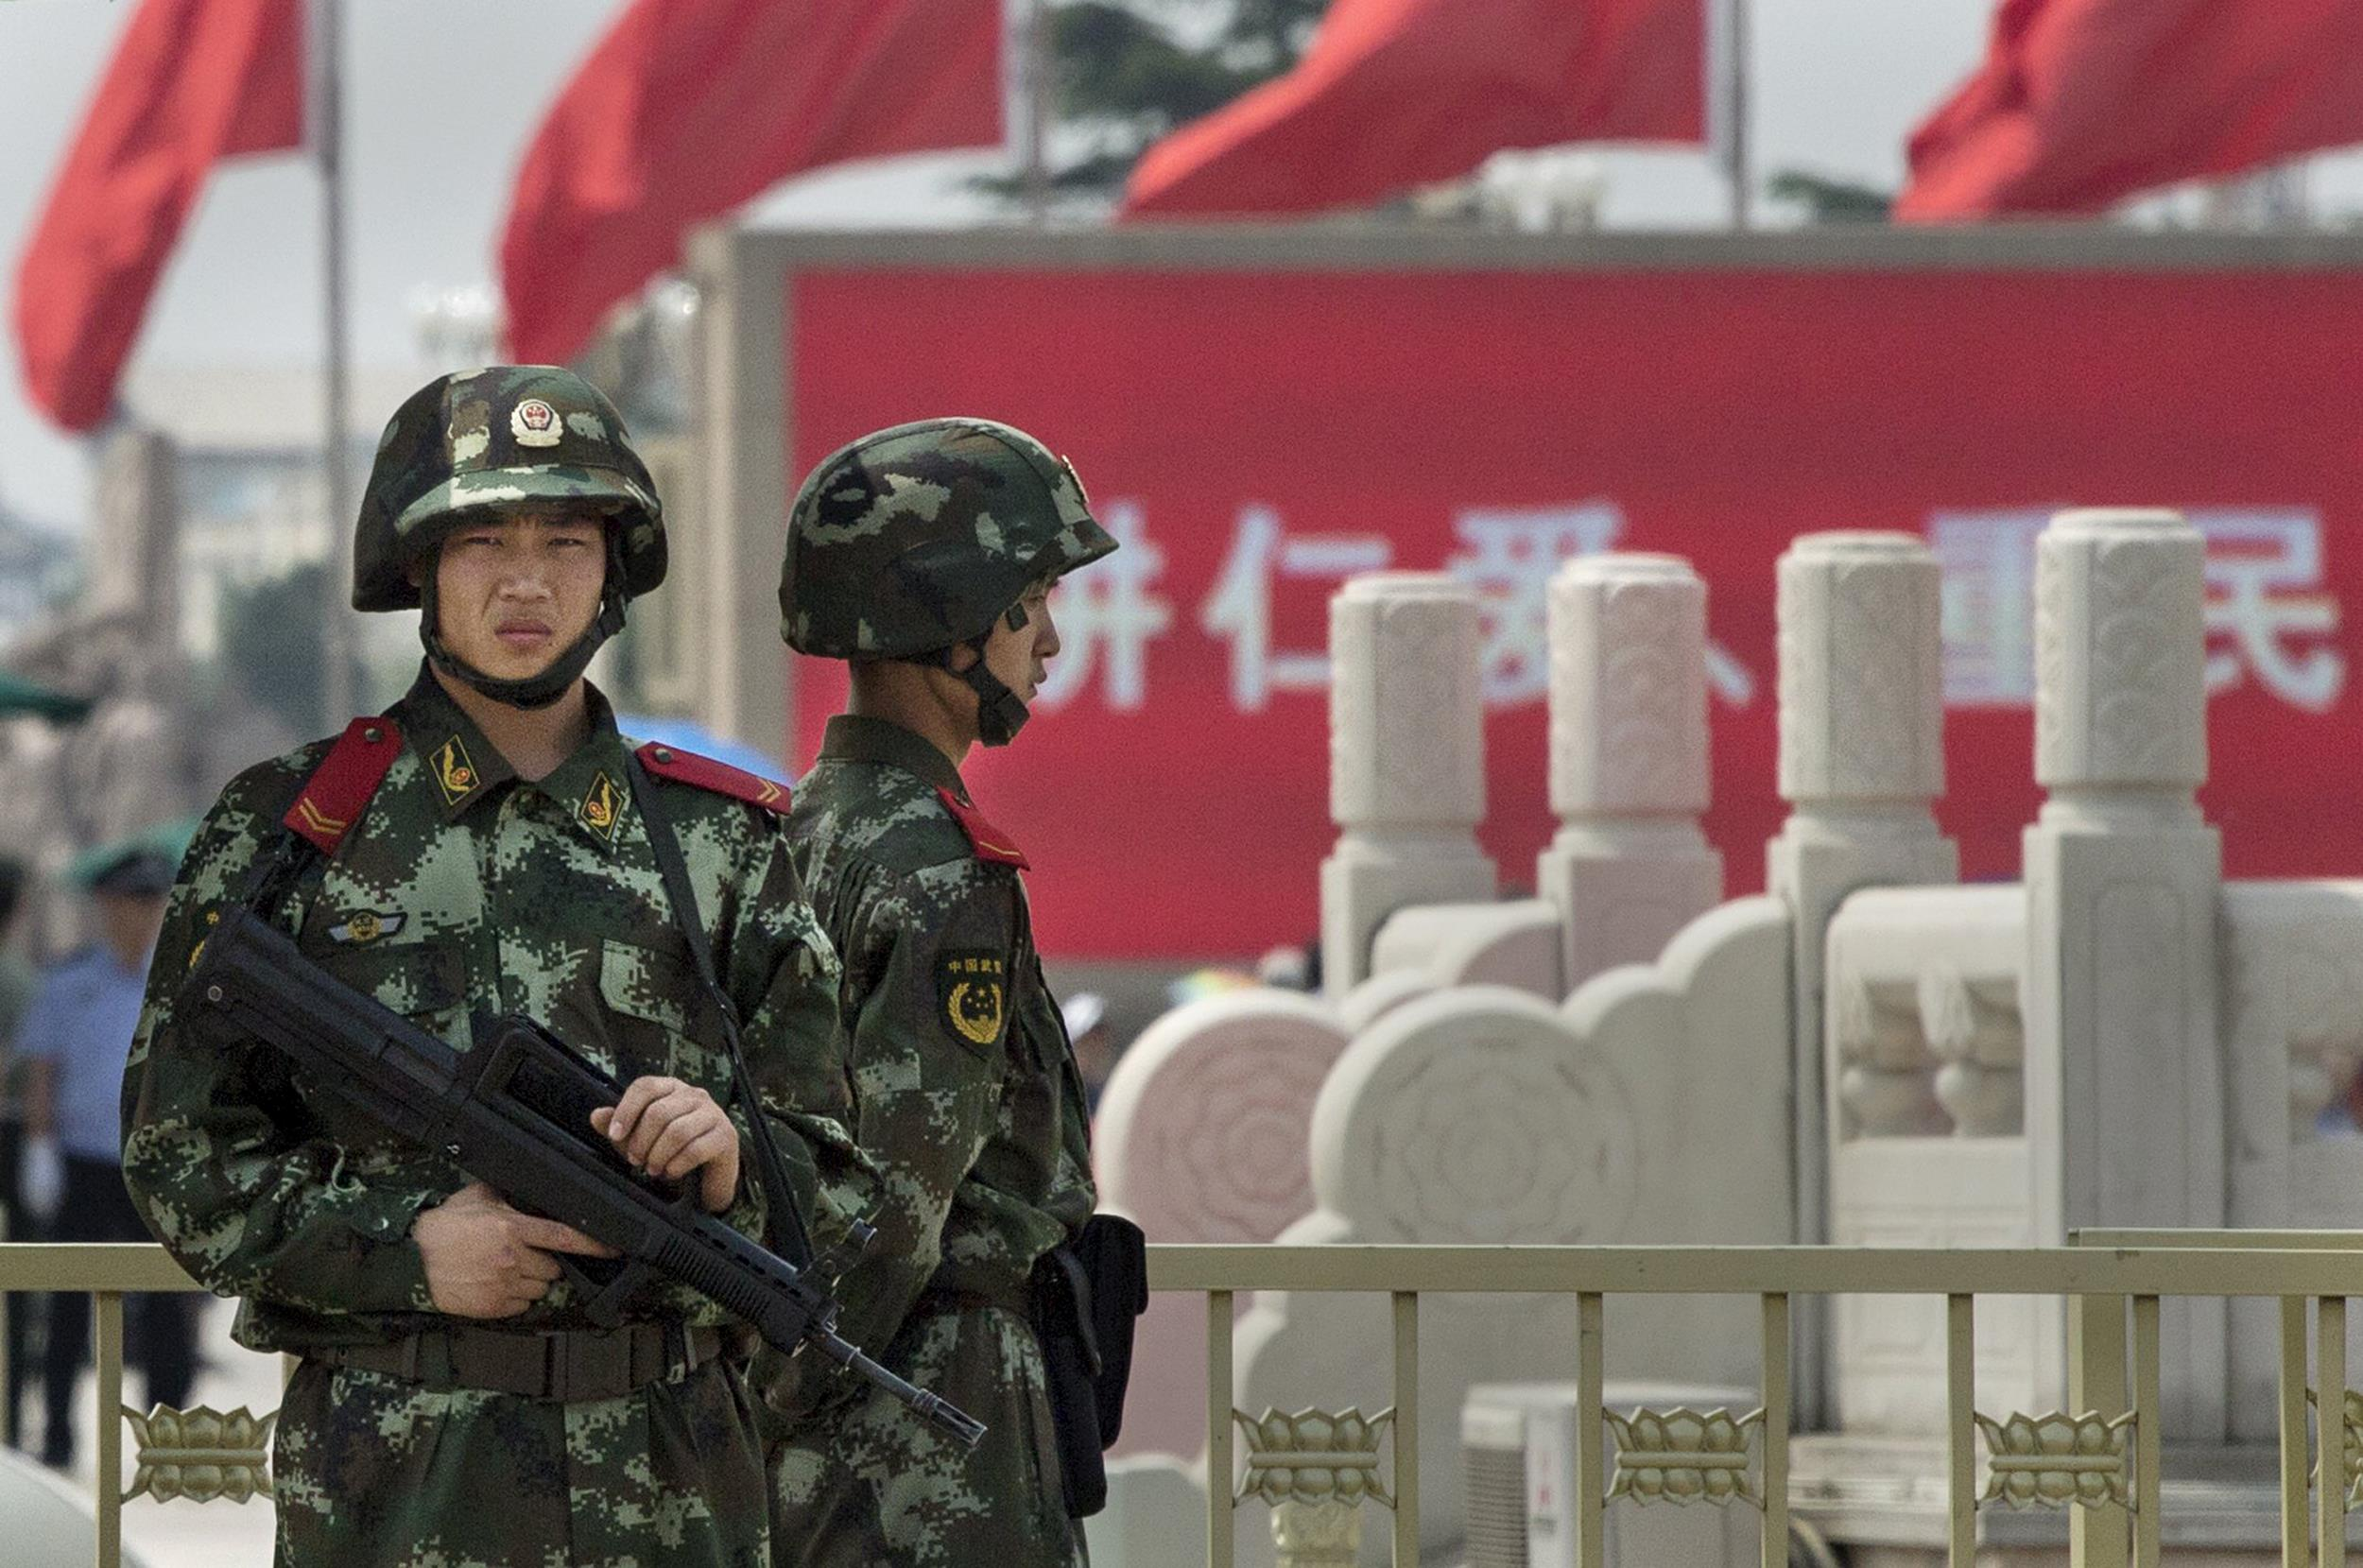 Image: Chinese paramilitary police stand guard in Tiananmen Square